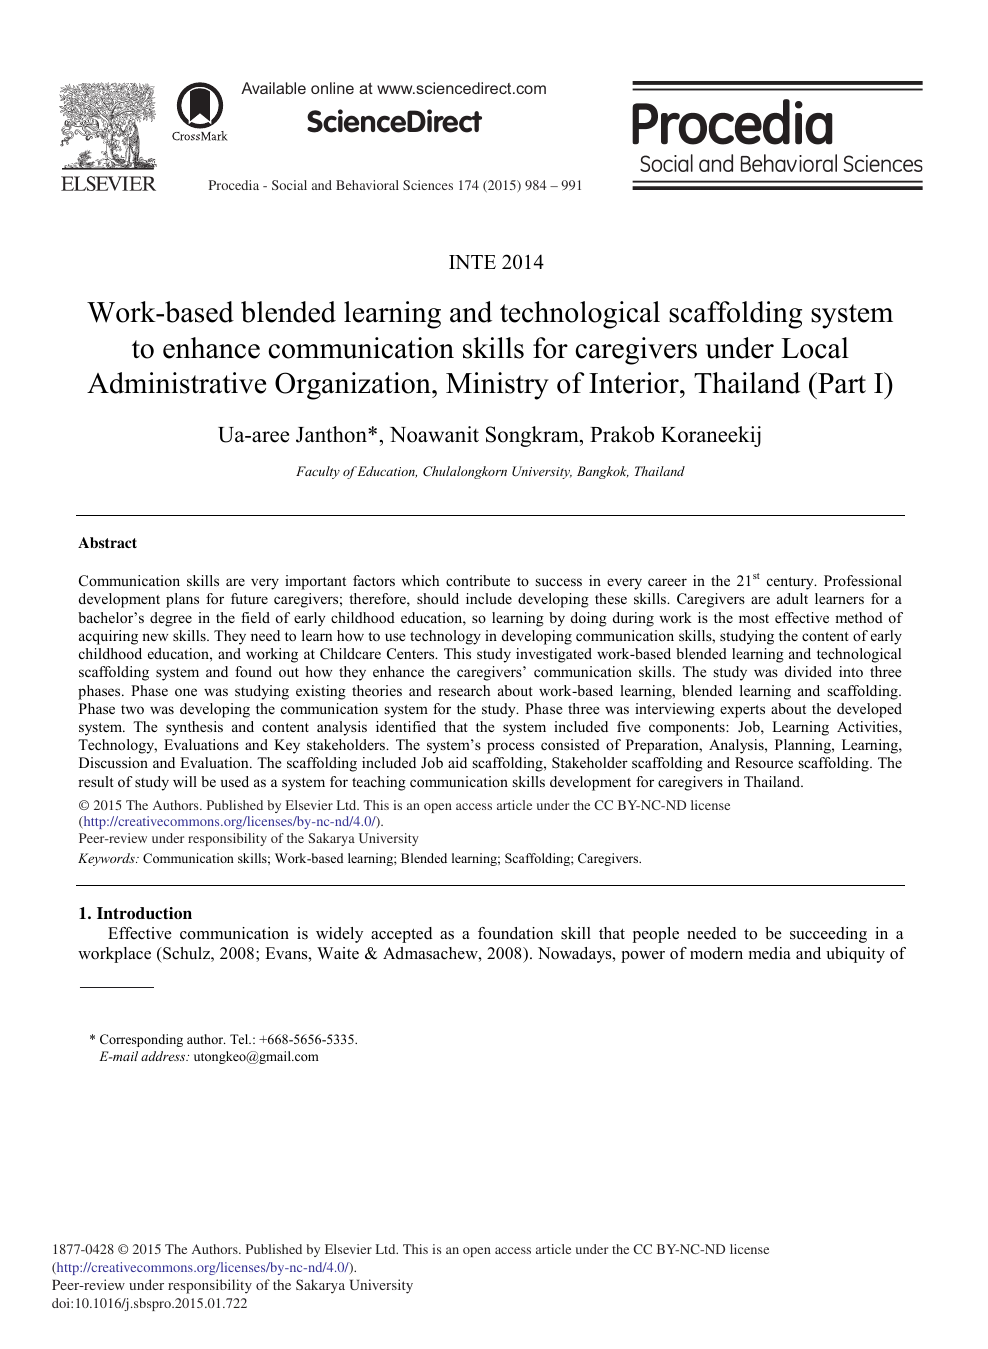 Work-based Blended Learning and Technological Scaffolding